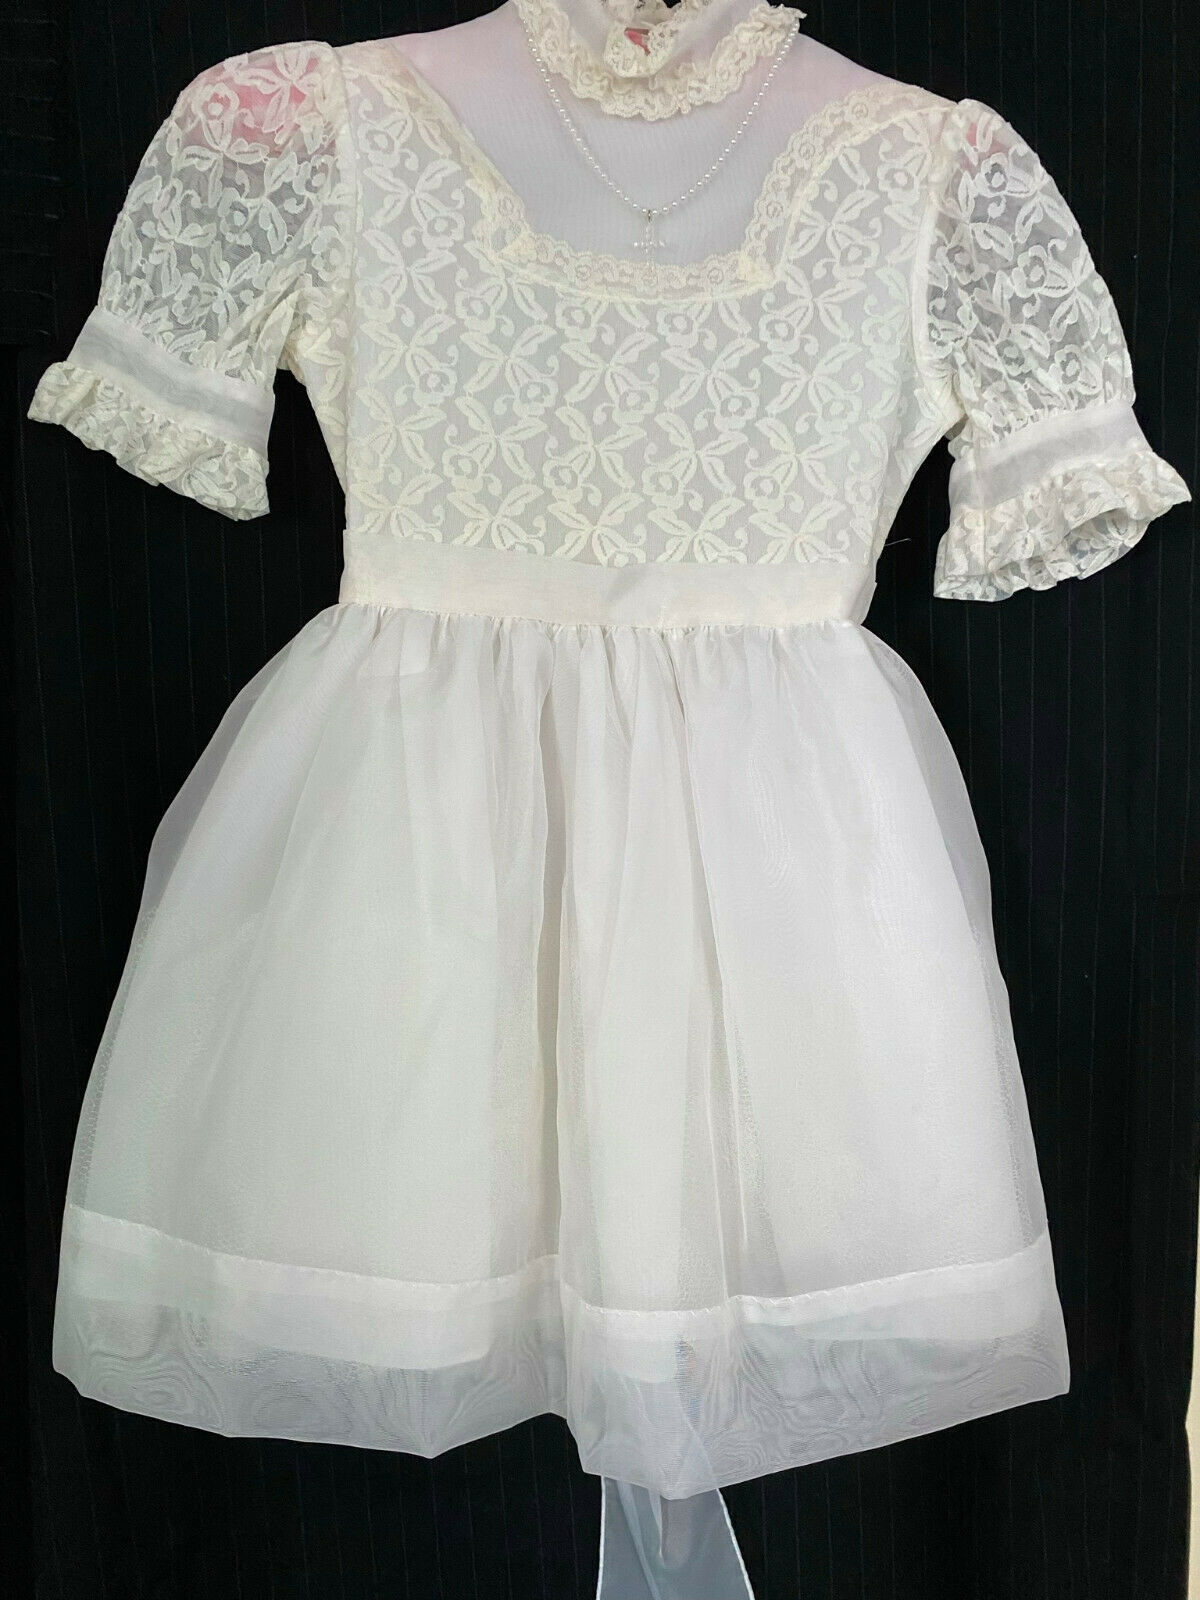 Hollywood Girl's White Formal Dress, Confirmation, Clean, See Descrip.for Dimen.